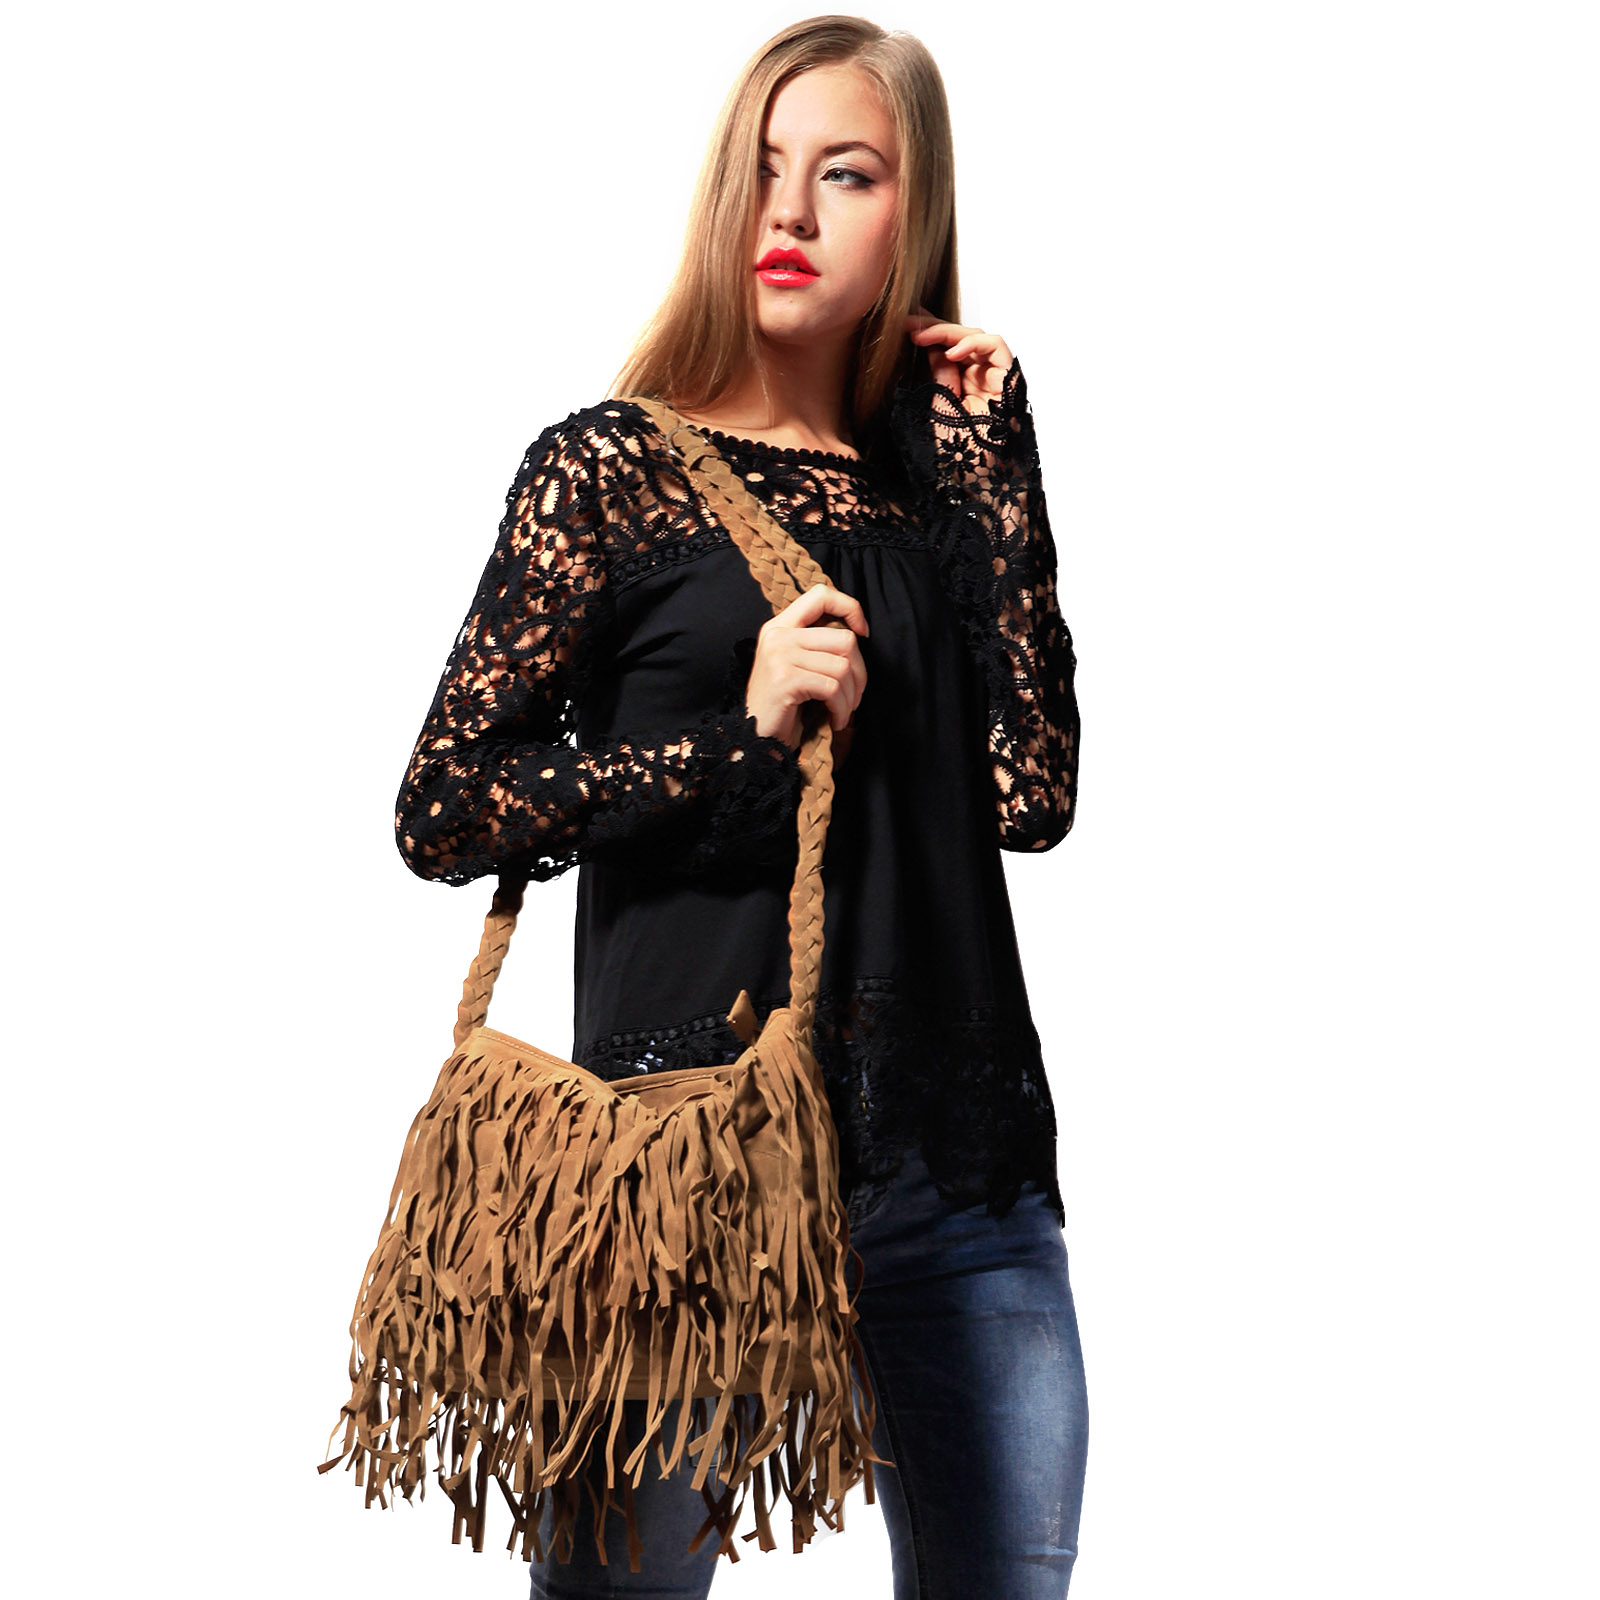 Celebrity Fringe Tassel Shoulder Messenger Bag 10